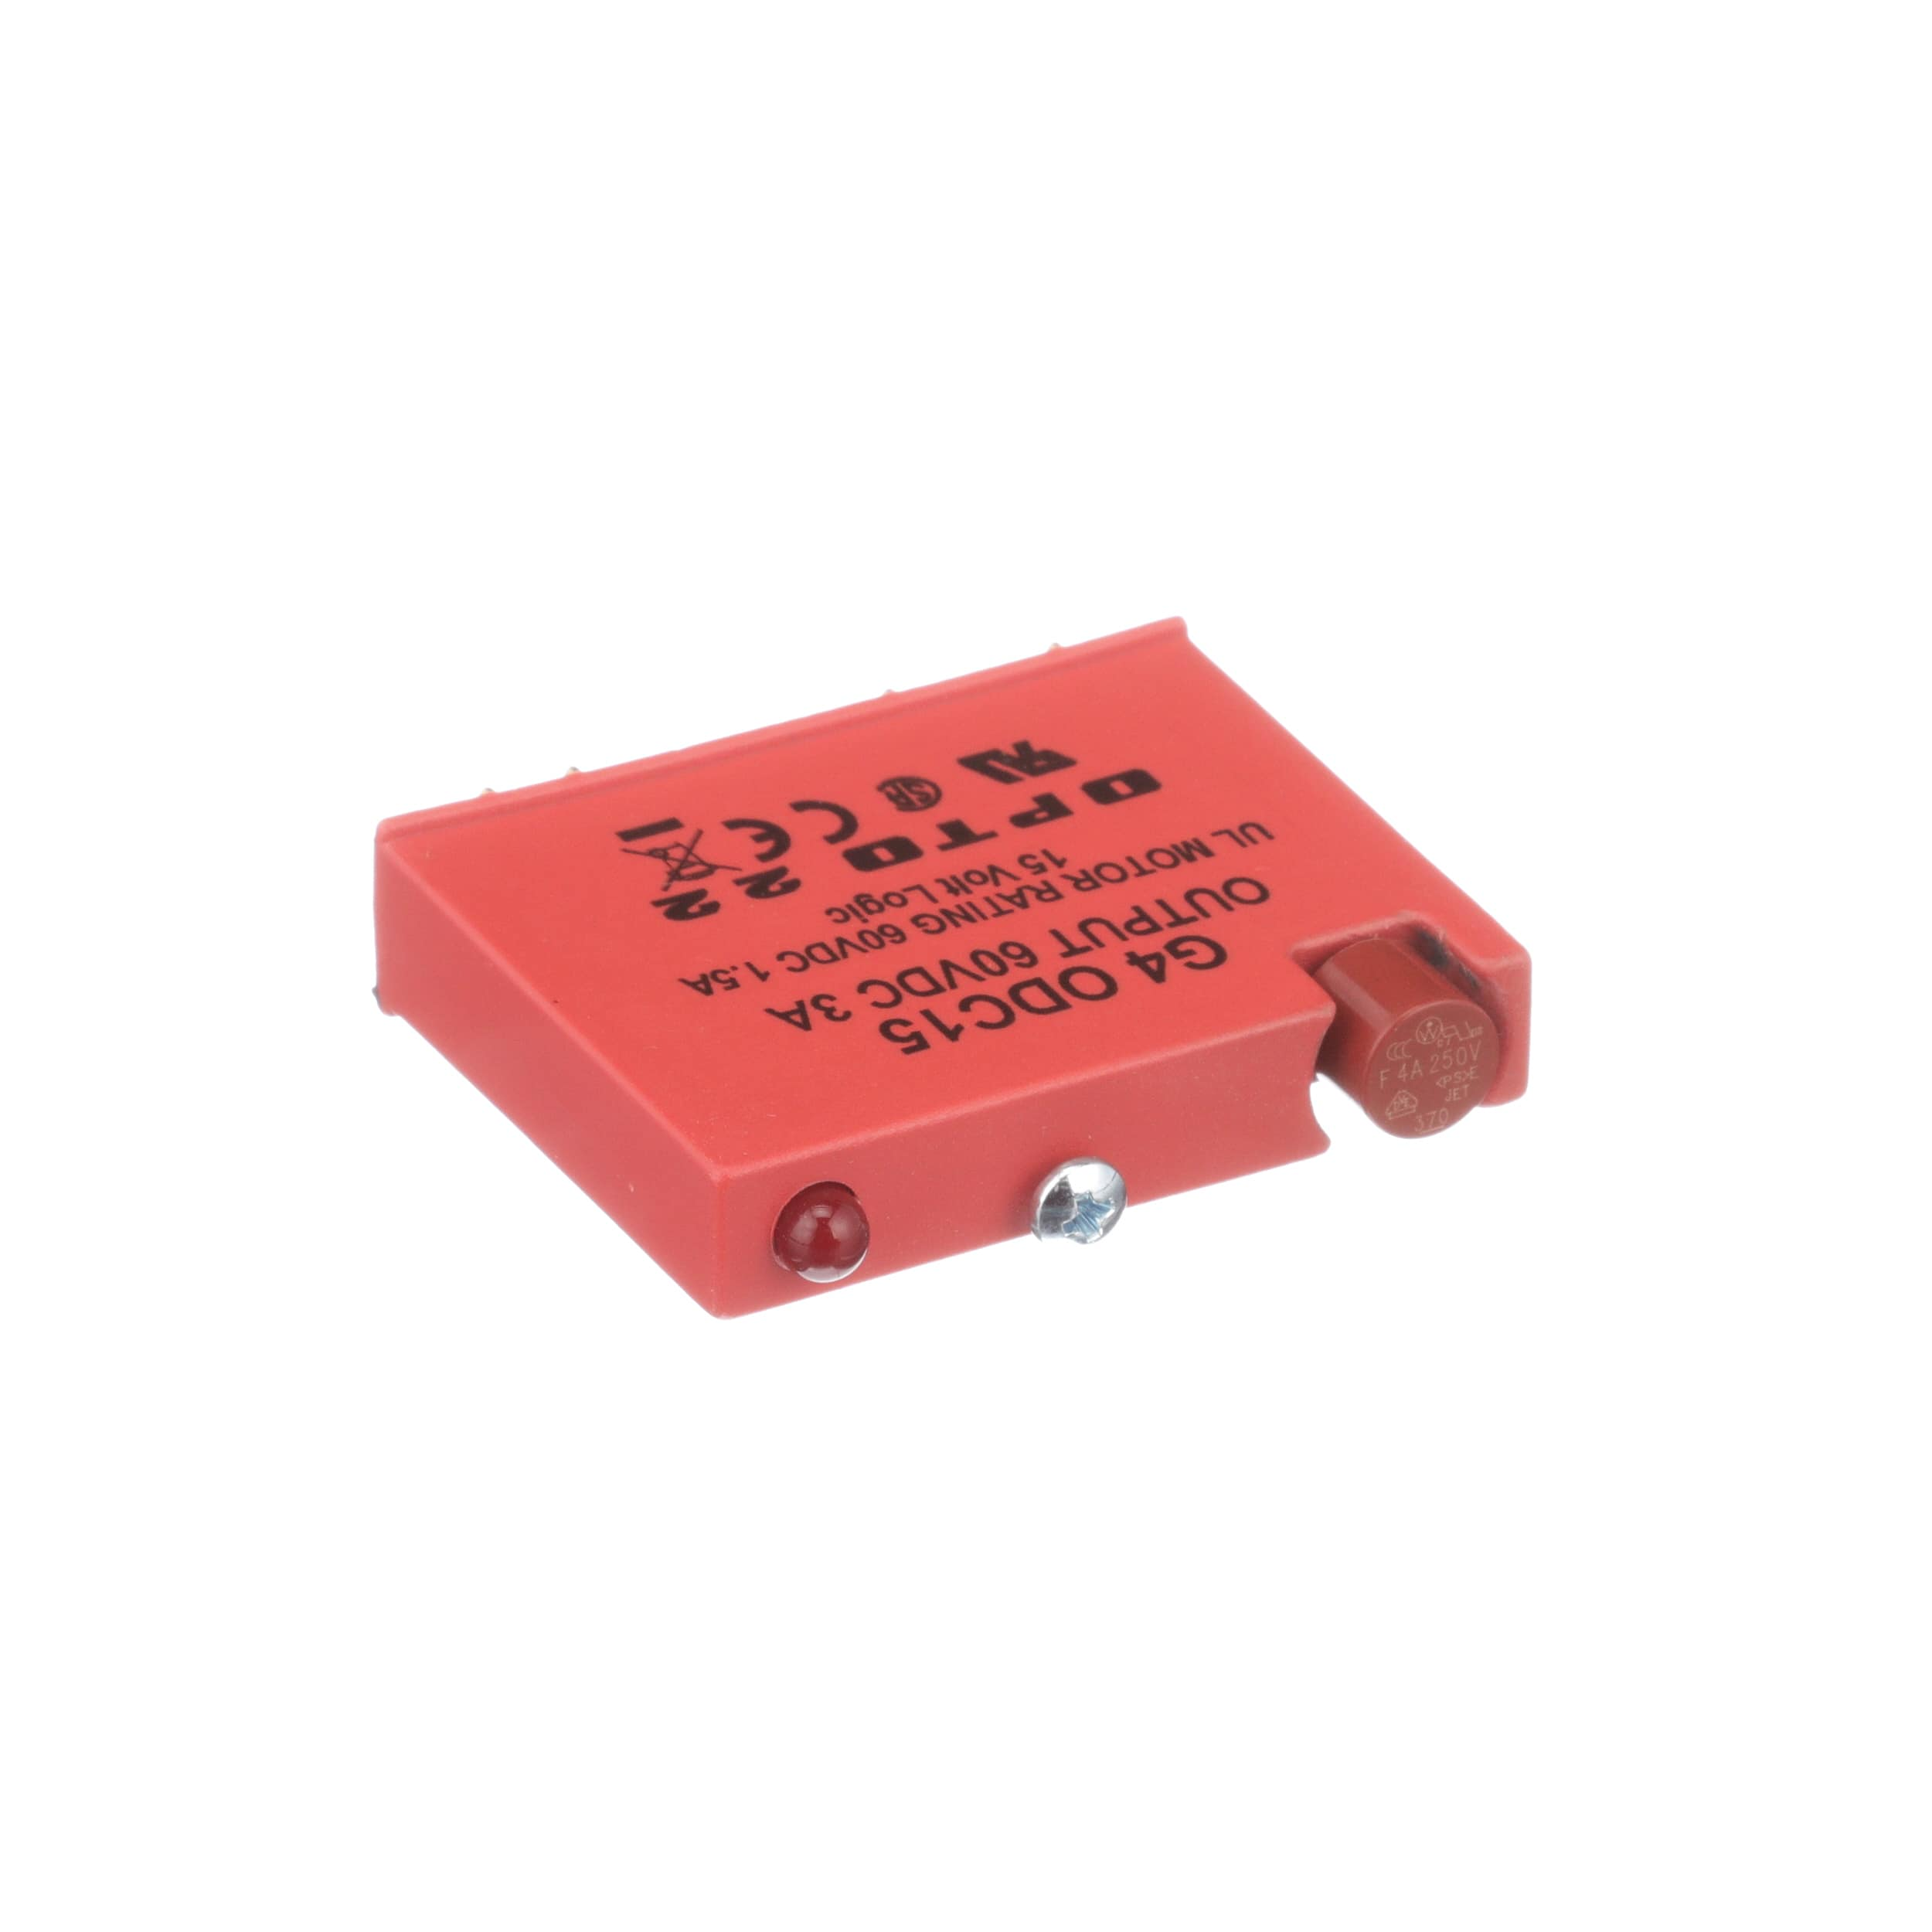 Opto 22 G4odc15 Plc I O Module G4 3 A 5 60 V Dc 488x 122 X Solid State Relay Z240d10 411 Mm Allied Electronics Automation